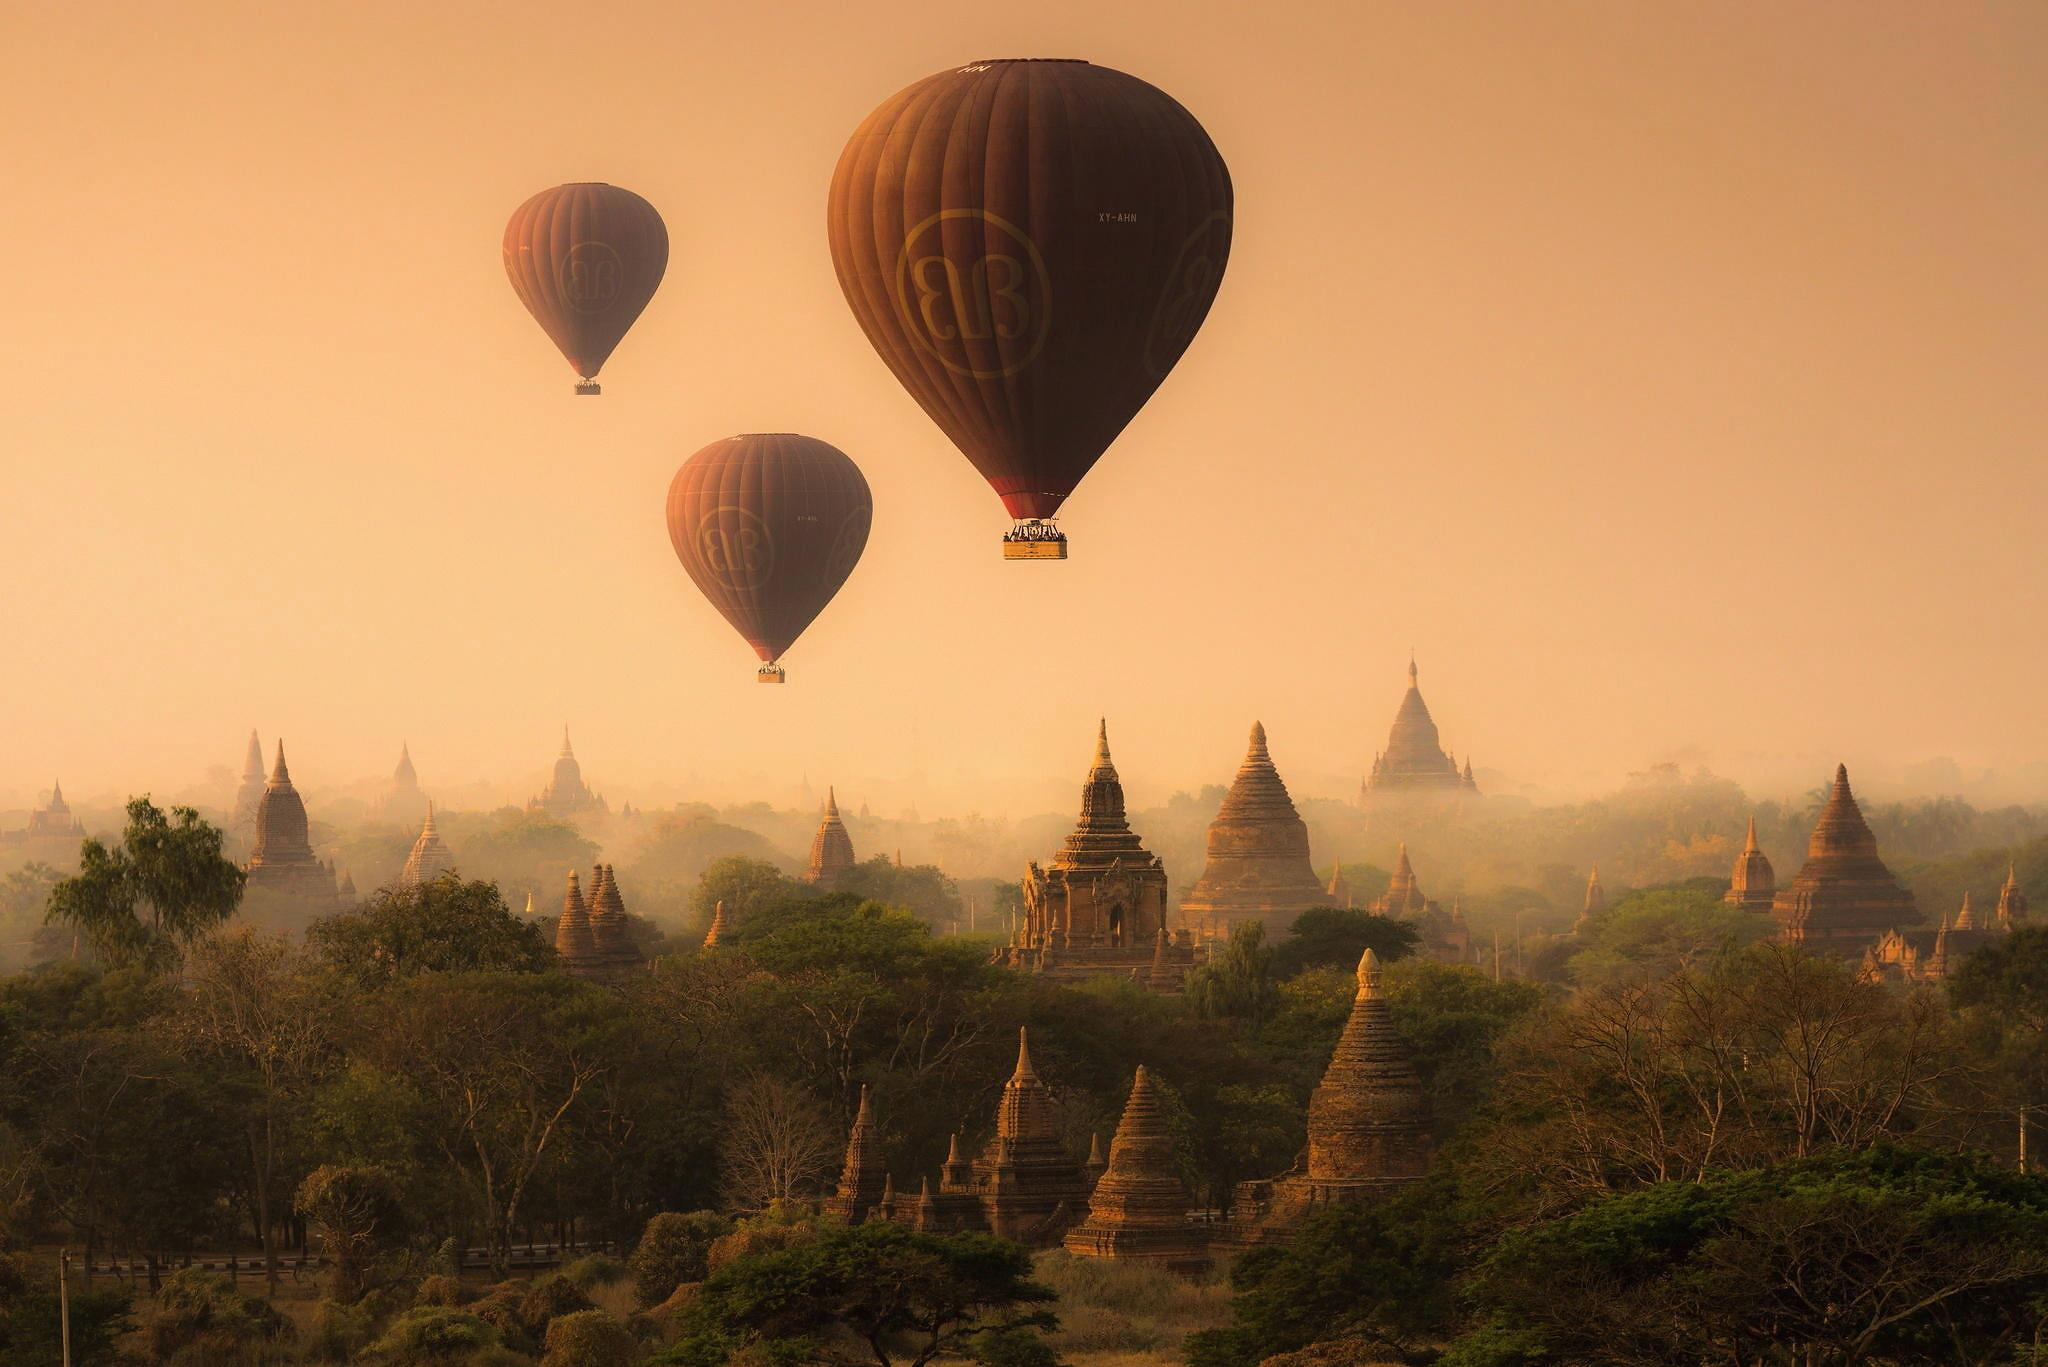 Wallpapers Myanmar, Bagan, pagoda, temple, hot air balloon, balloon